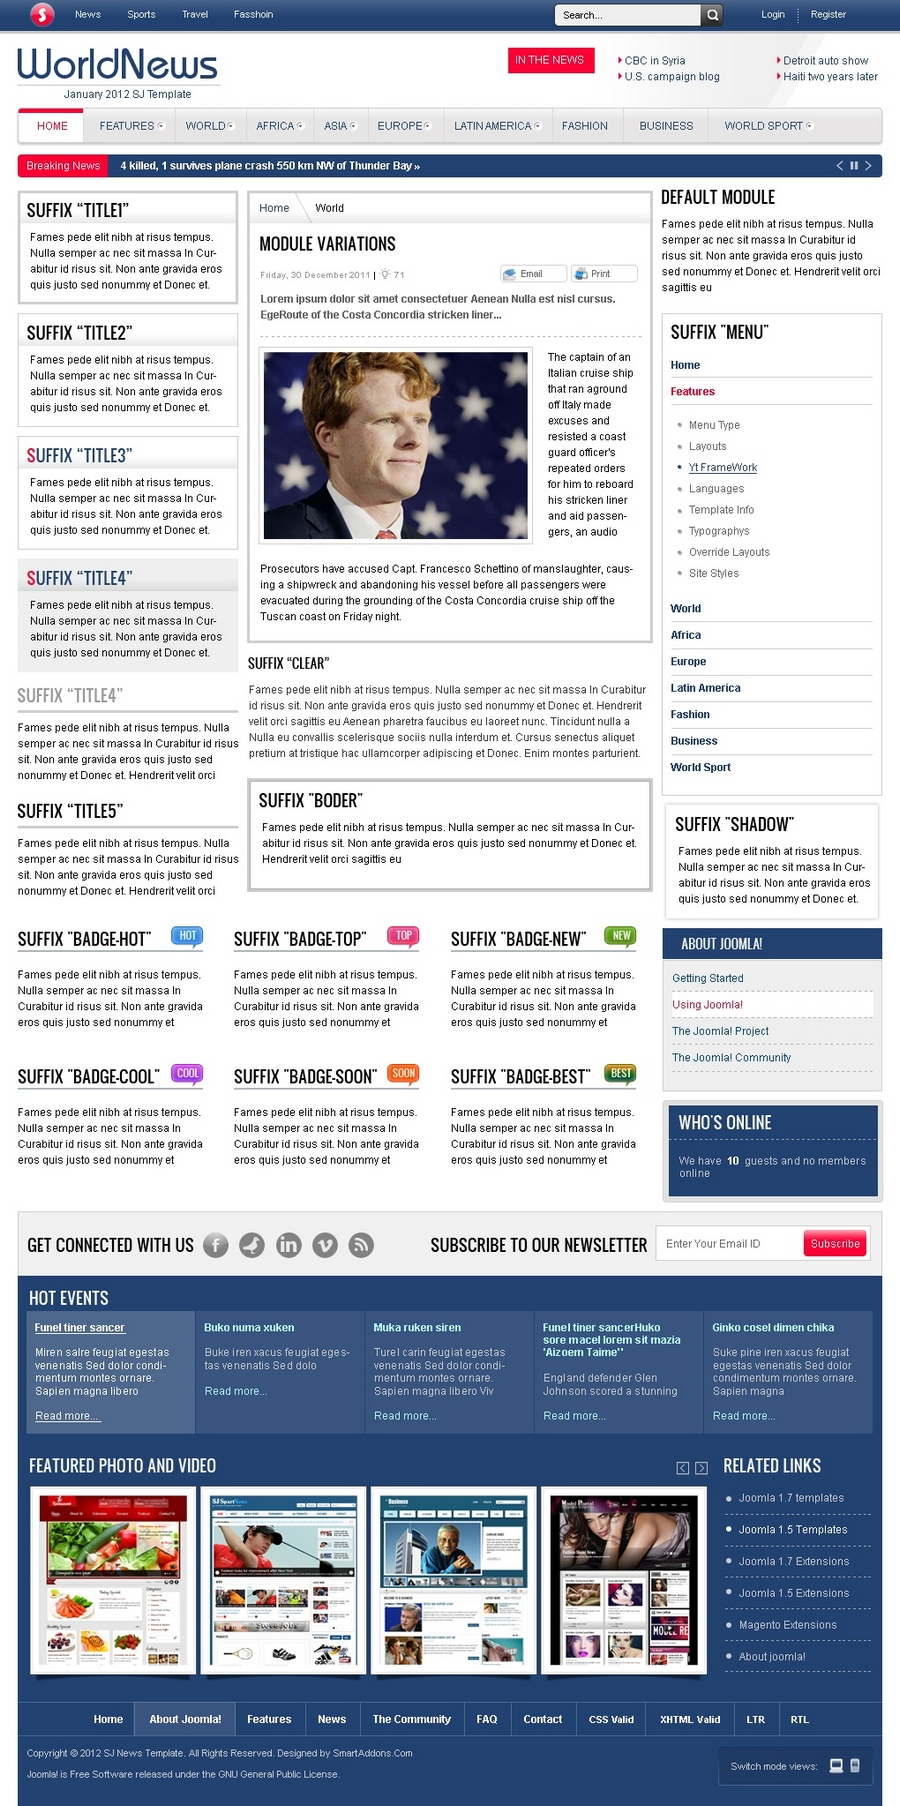 SJ WorldNews - Joomla Template for News magazine - 92variations.jpg